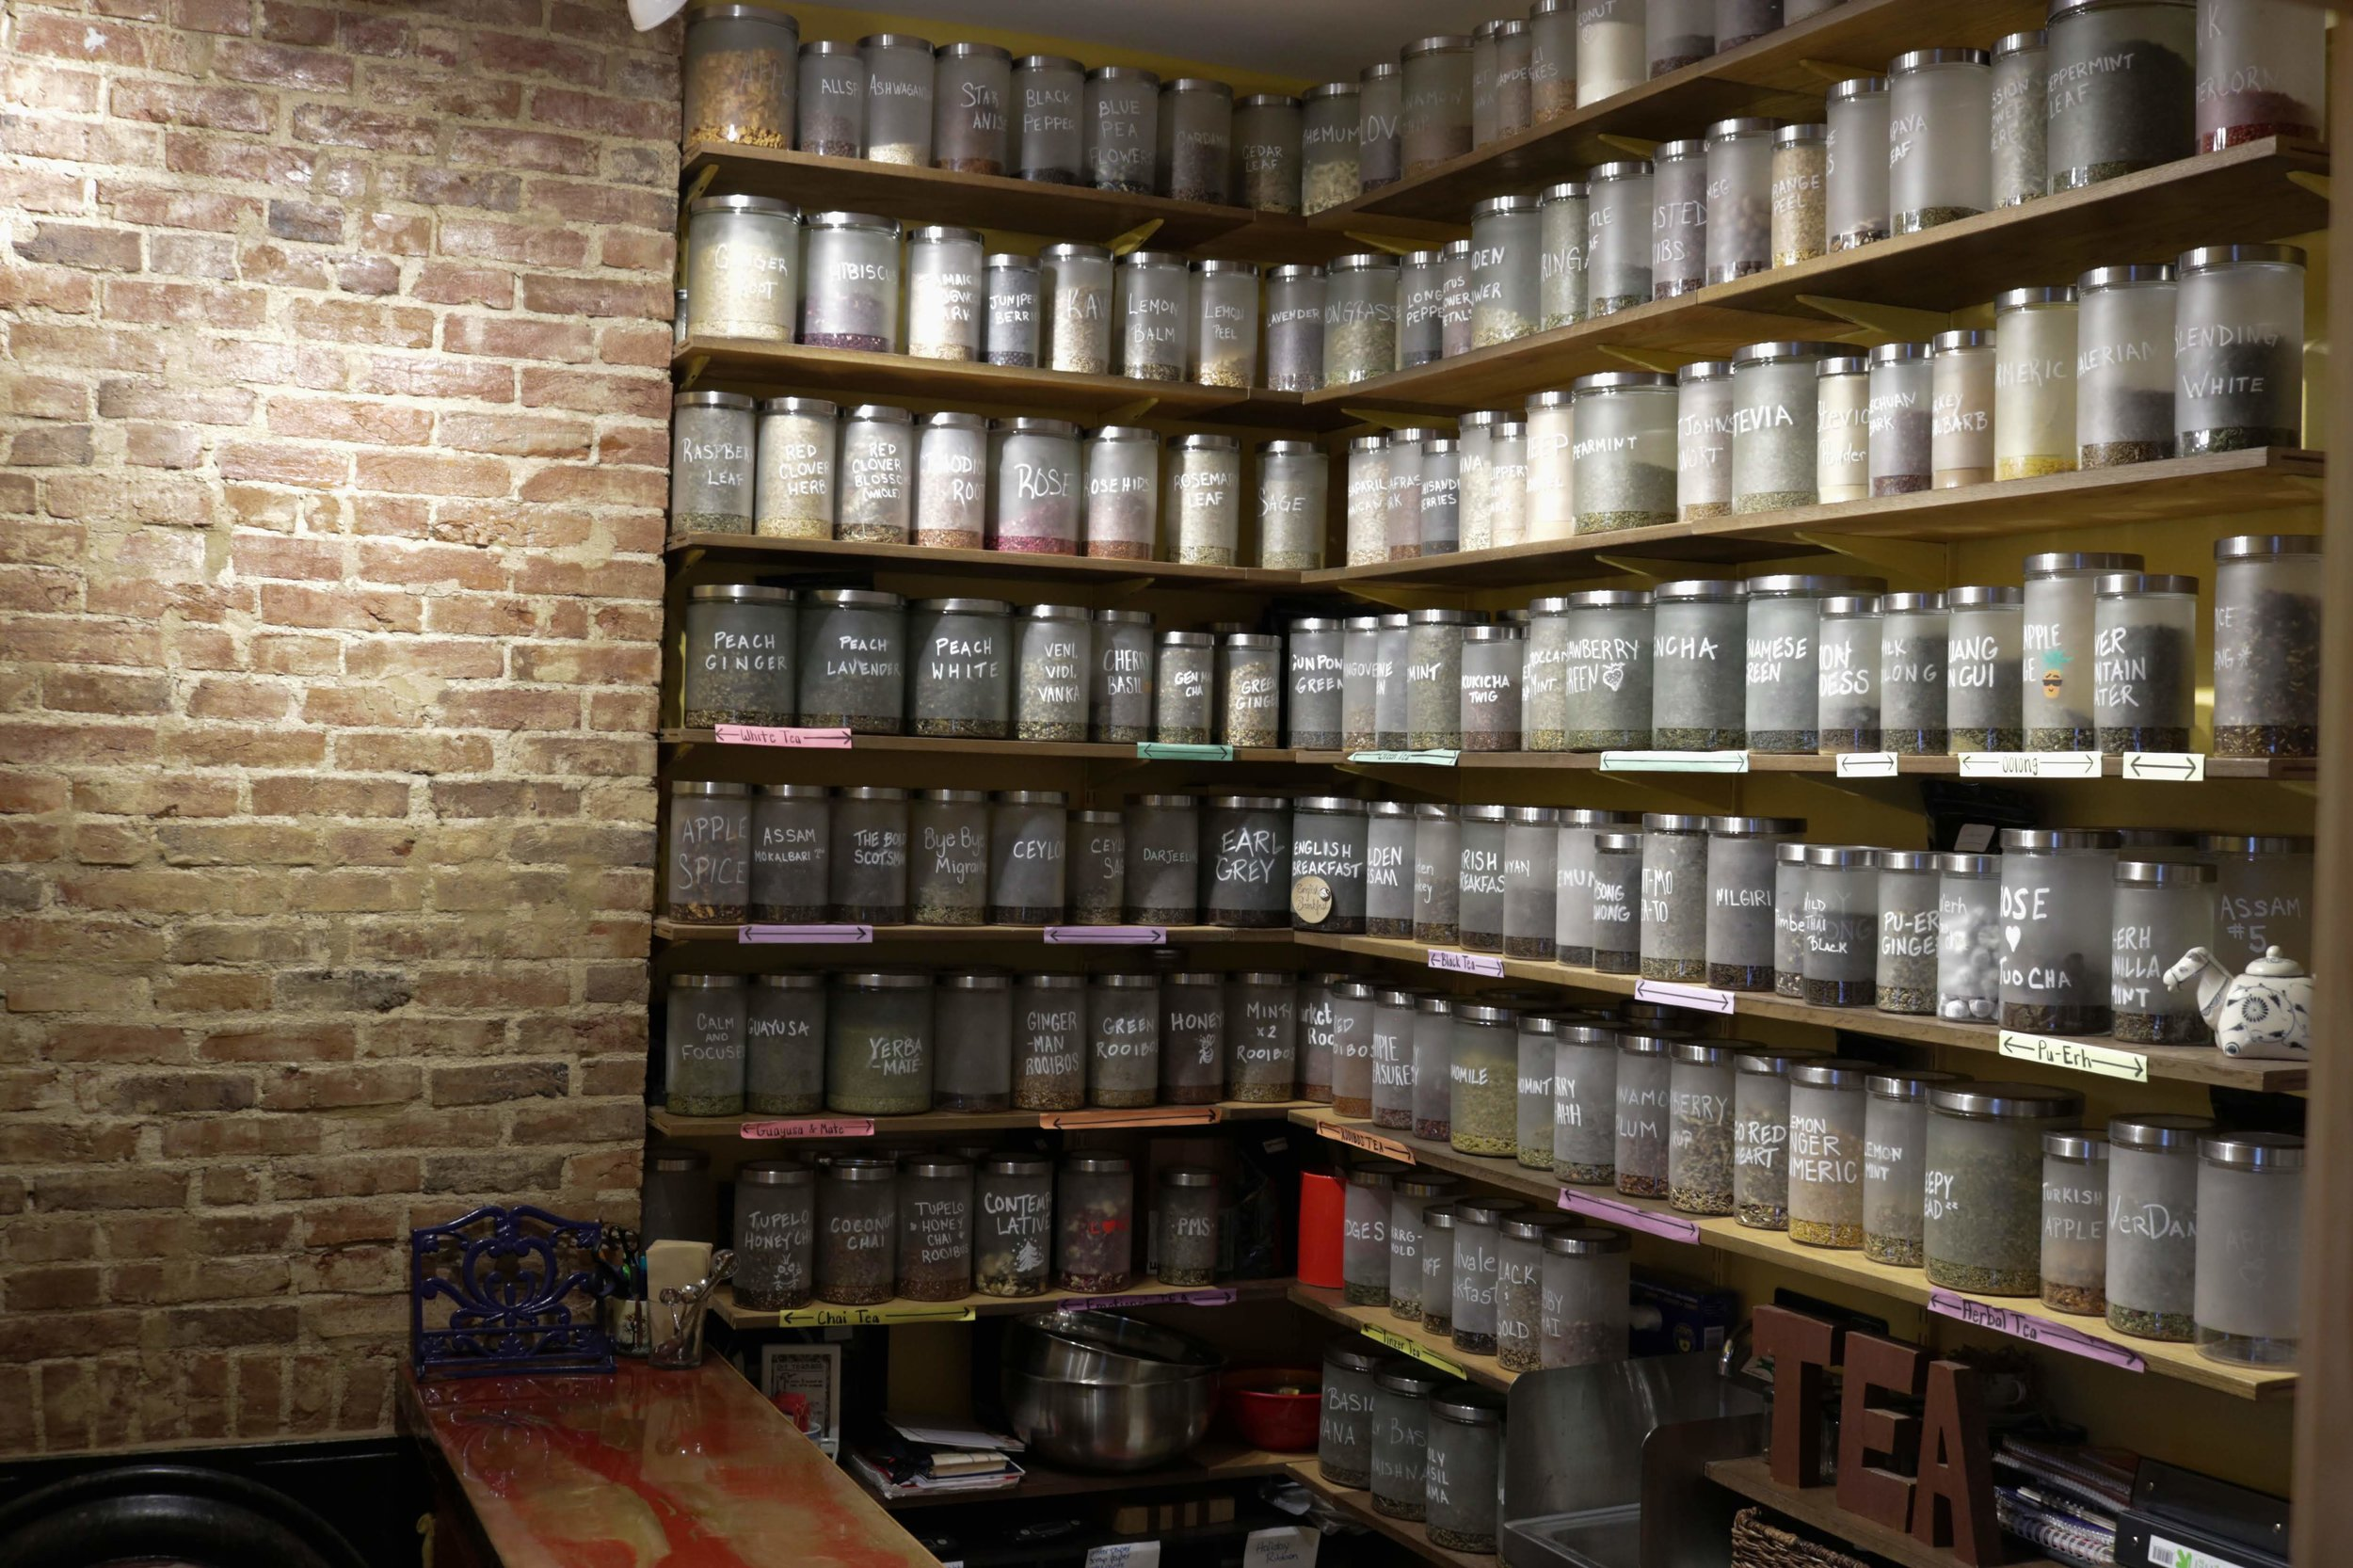 Choose from more than 75 organic teas and tea blends.